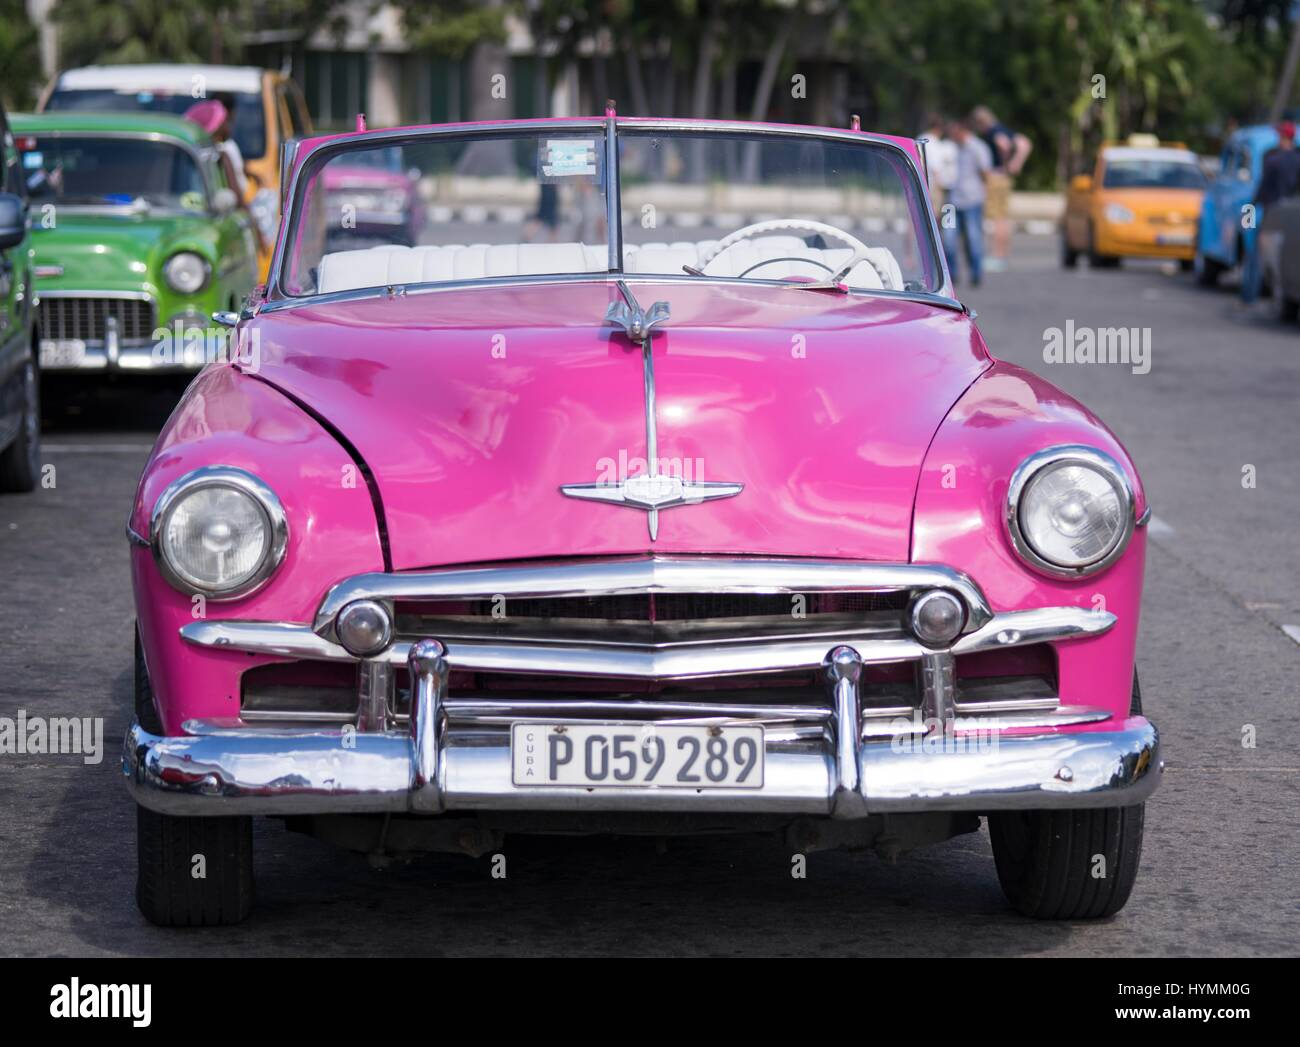 Old fashioned classic 1950s American car in vibrant pink colour ...